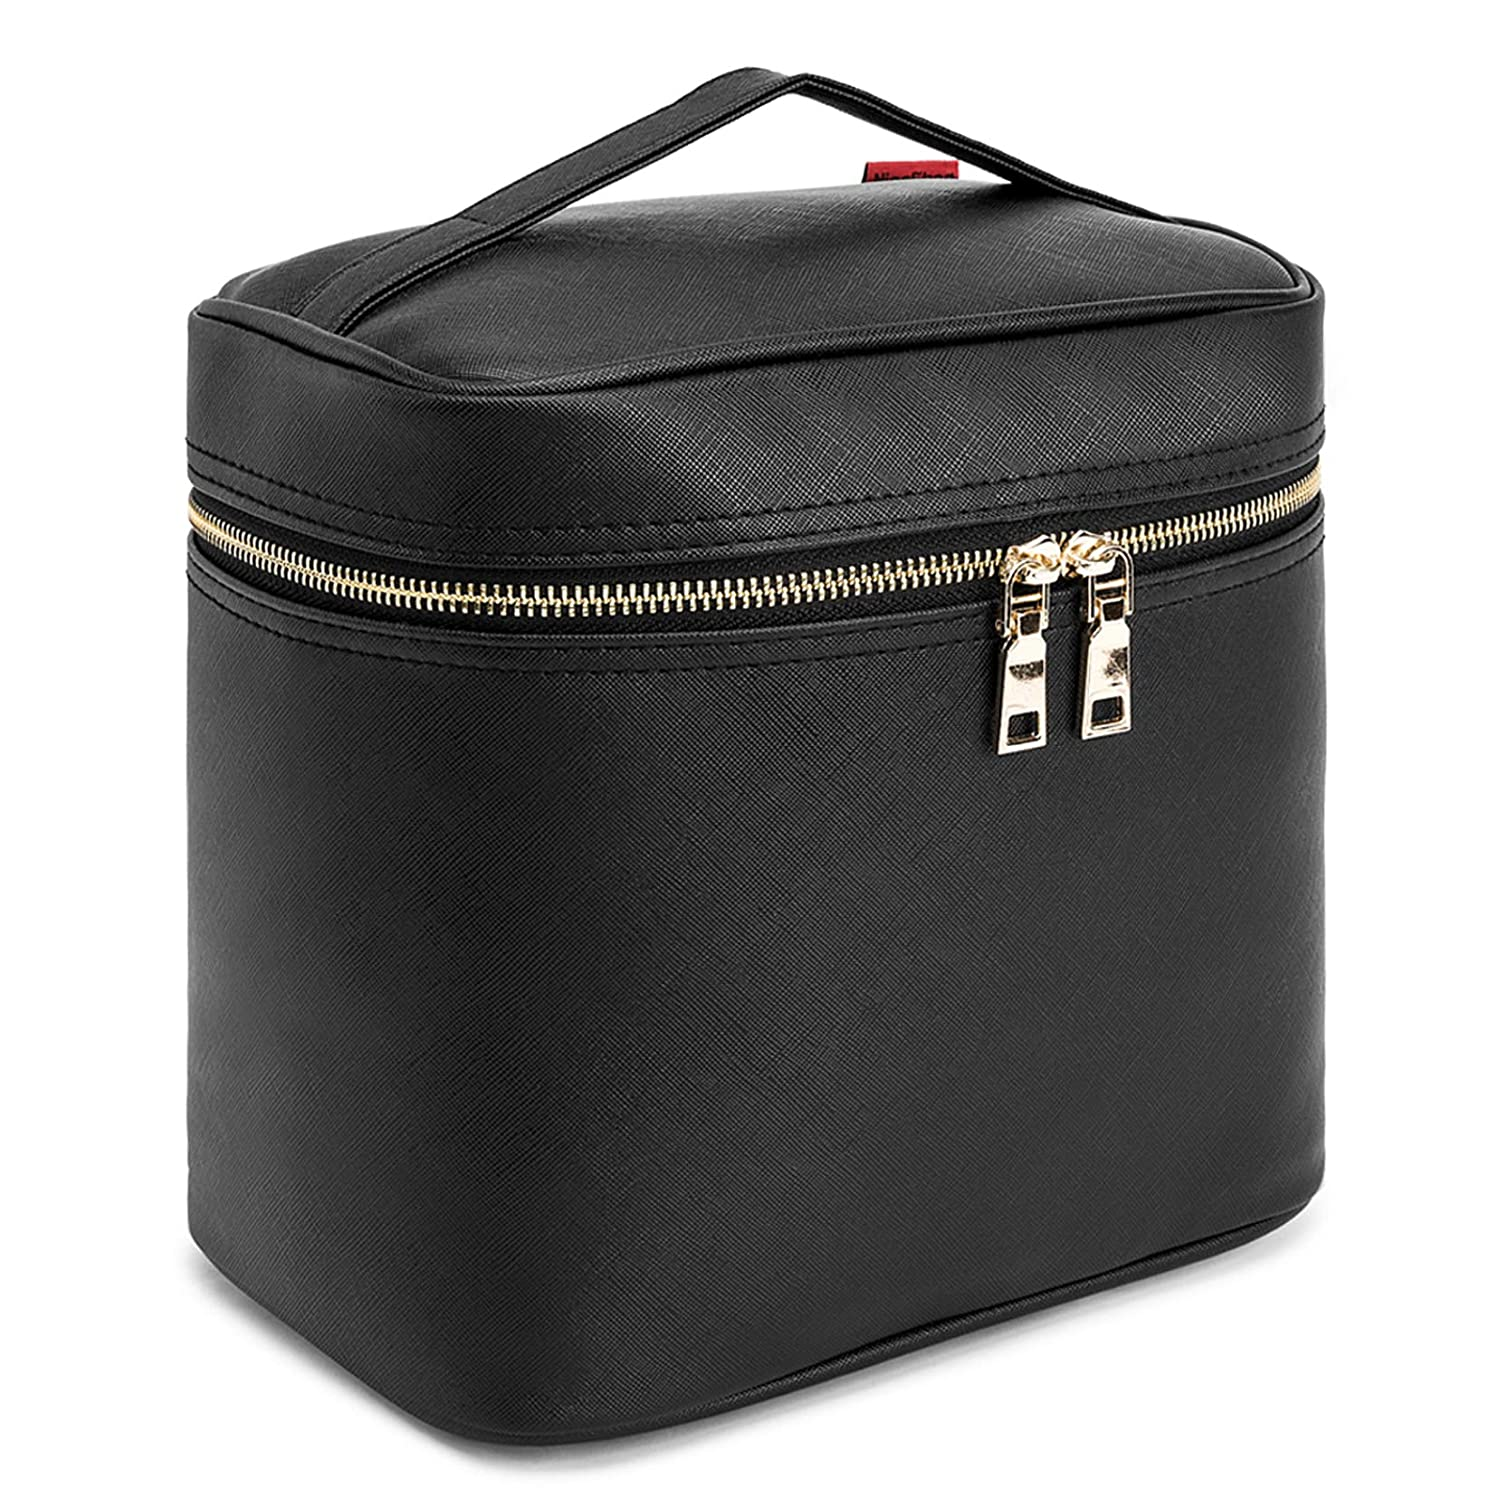 Makeup Bag NiceEbag Travel Cosmetic Bag for Women and Men Cute Cosmetic Case Leather Makeup Case for Cosmetics Make Up Tools Toiletry Jewelry Digital Accessories,Black